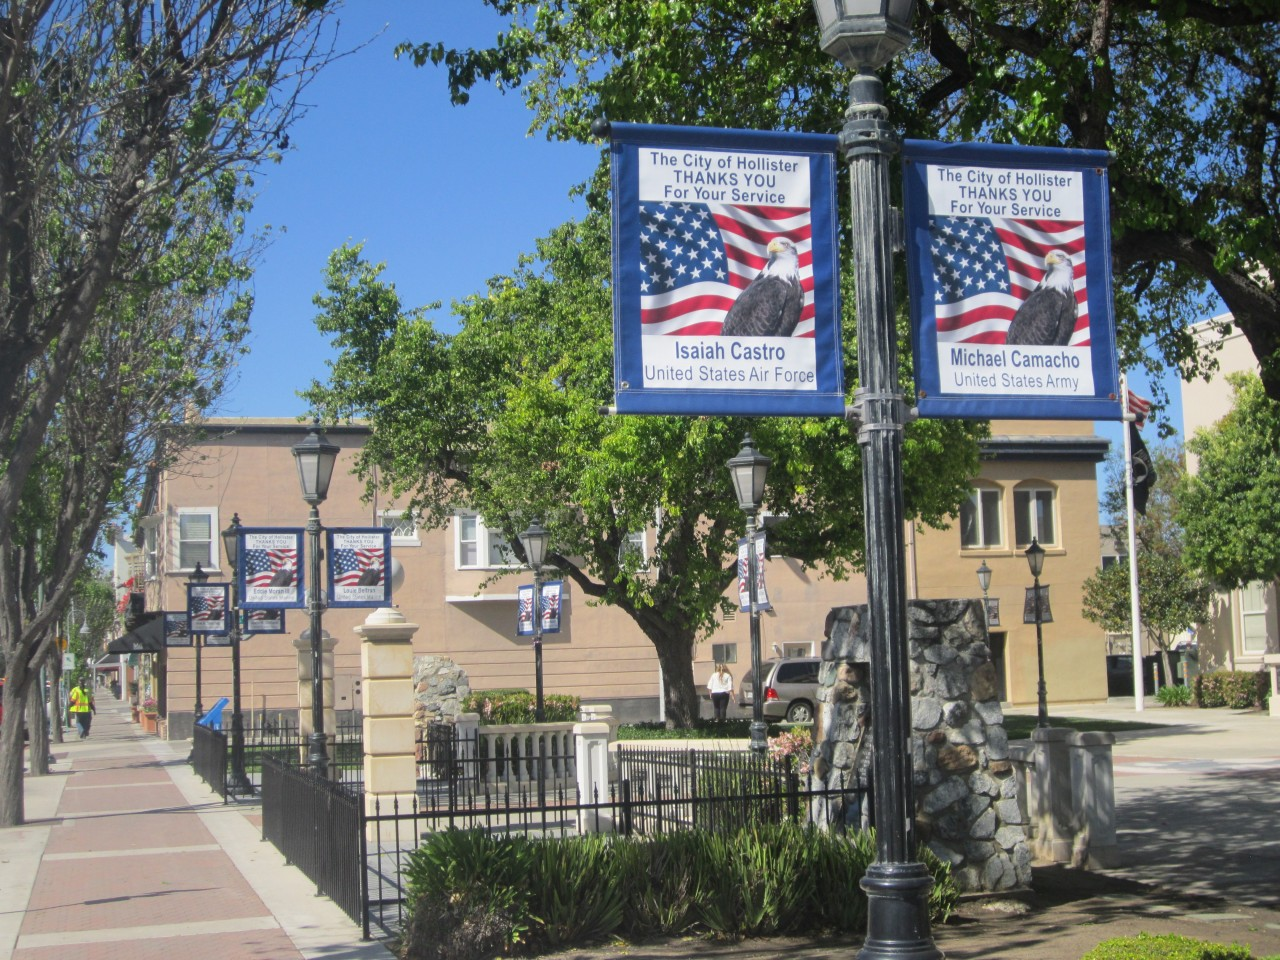 Banners for current residents serving in the military can be seen on San Benito Street in downtown Hollister. Photo by Becky Bonner.